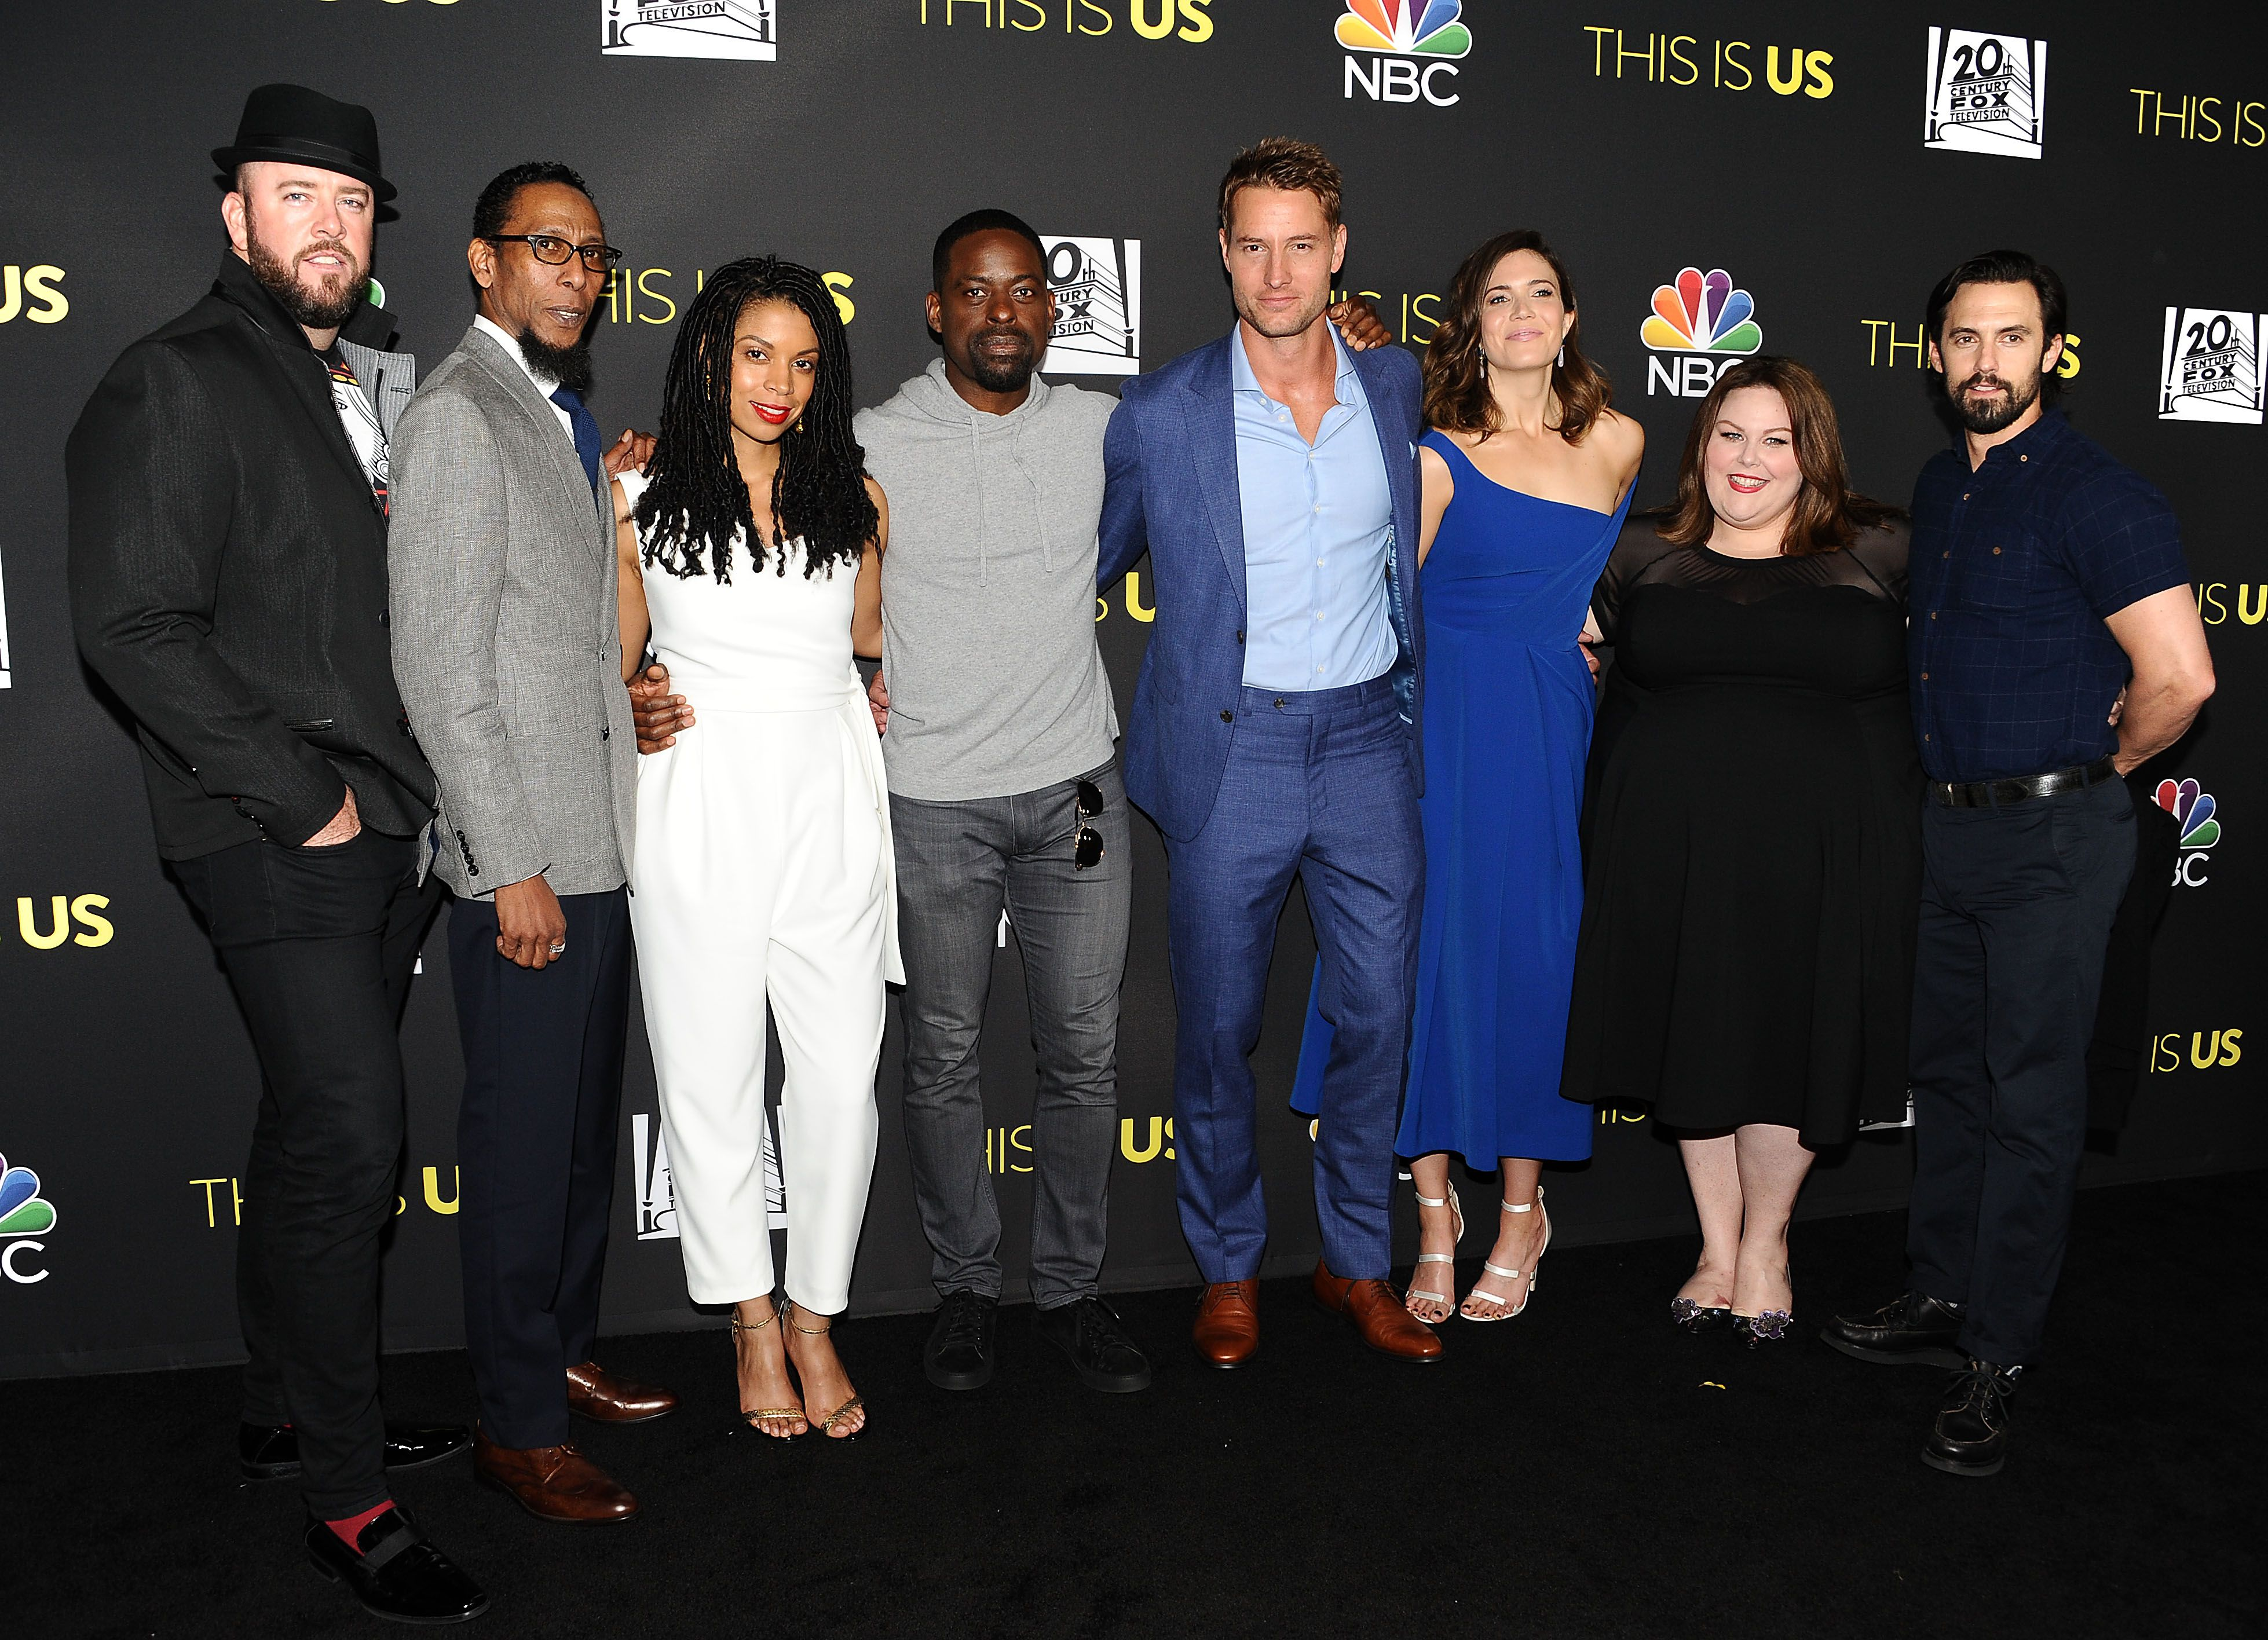 Journey Back To Christmas Cast.This Is Us Season 4 Cast Includes A Lot Of Brand New